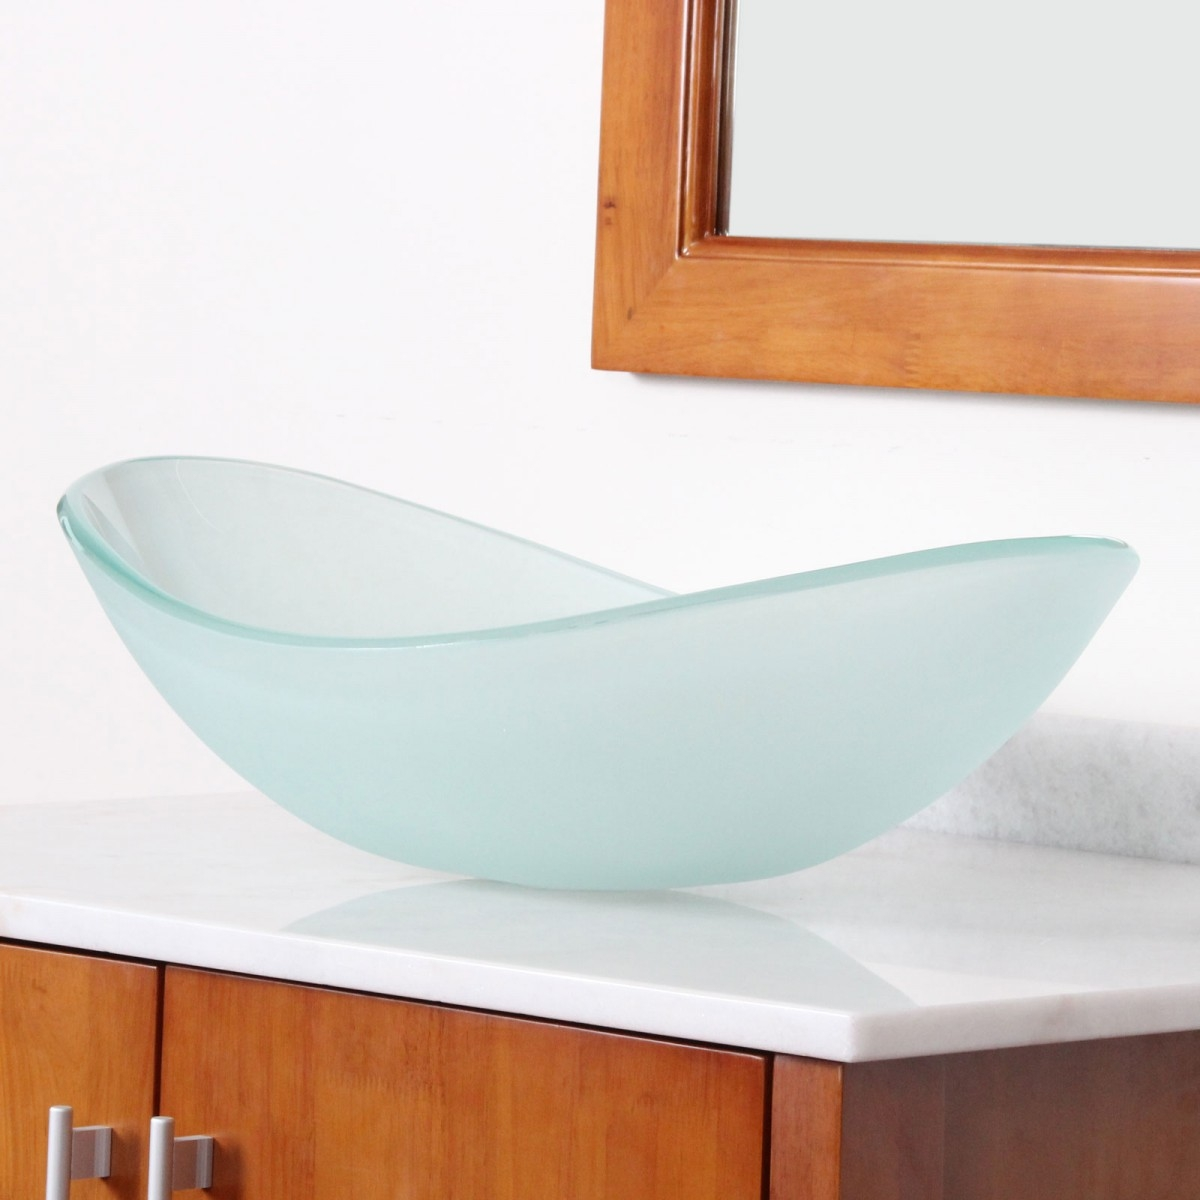 Ideas, faucet bay we sell glass bathroom sink and ceramic sink for within measurements 1200 x 1200  .